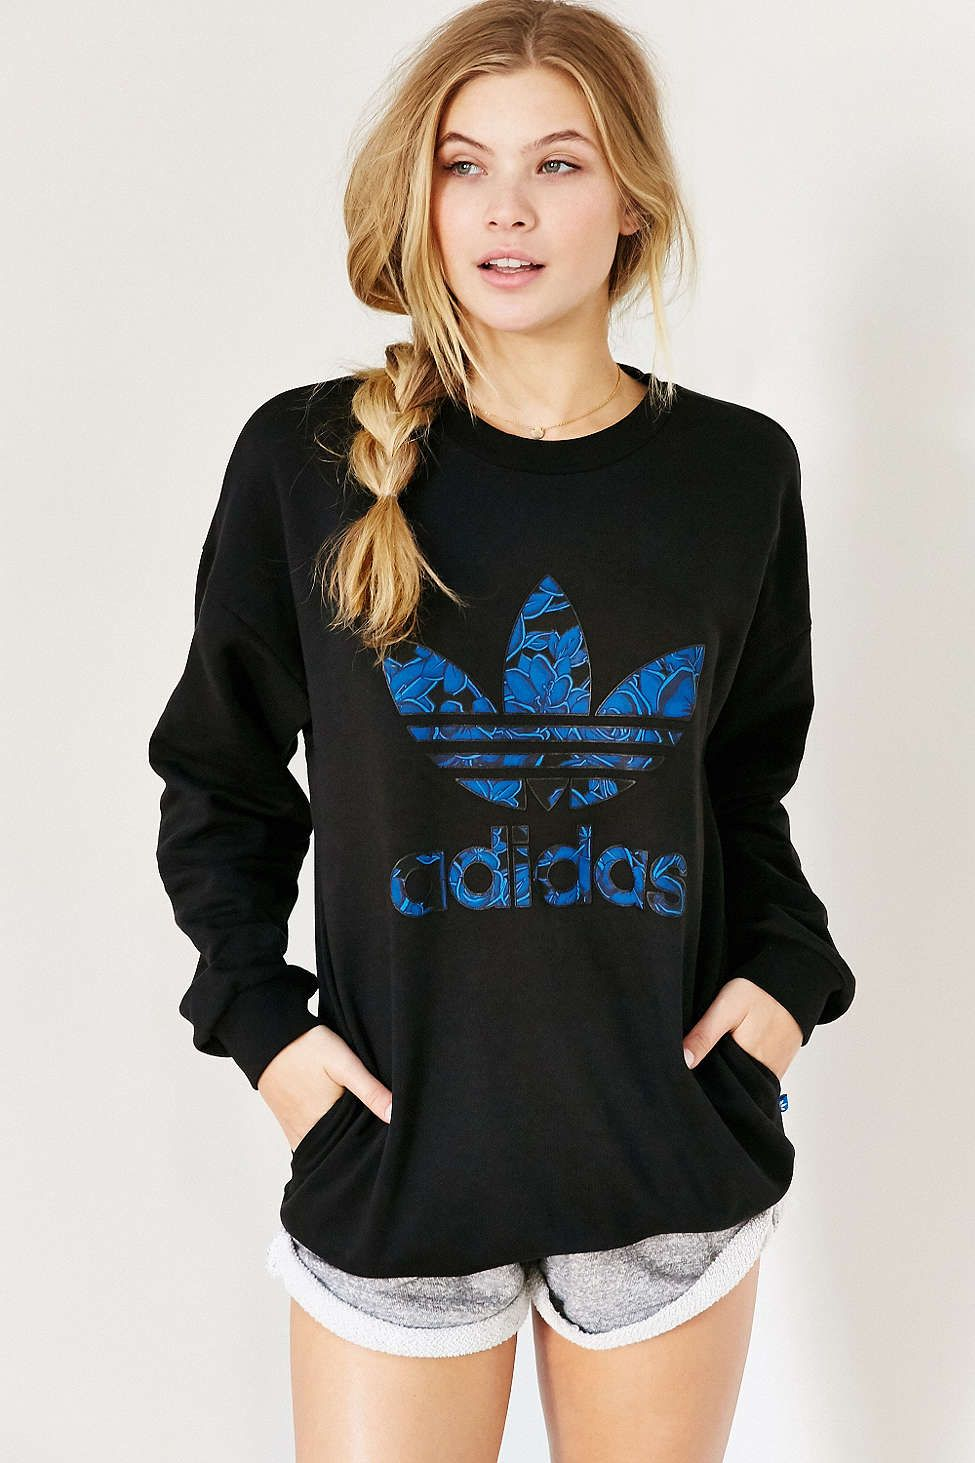 Adidas Blue Floral Sweatshirt Urban Outfitters Urban Wear Blue Floral Sweatshirt Clothes [ 1463 x 975 Pixel ]